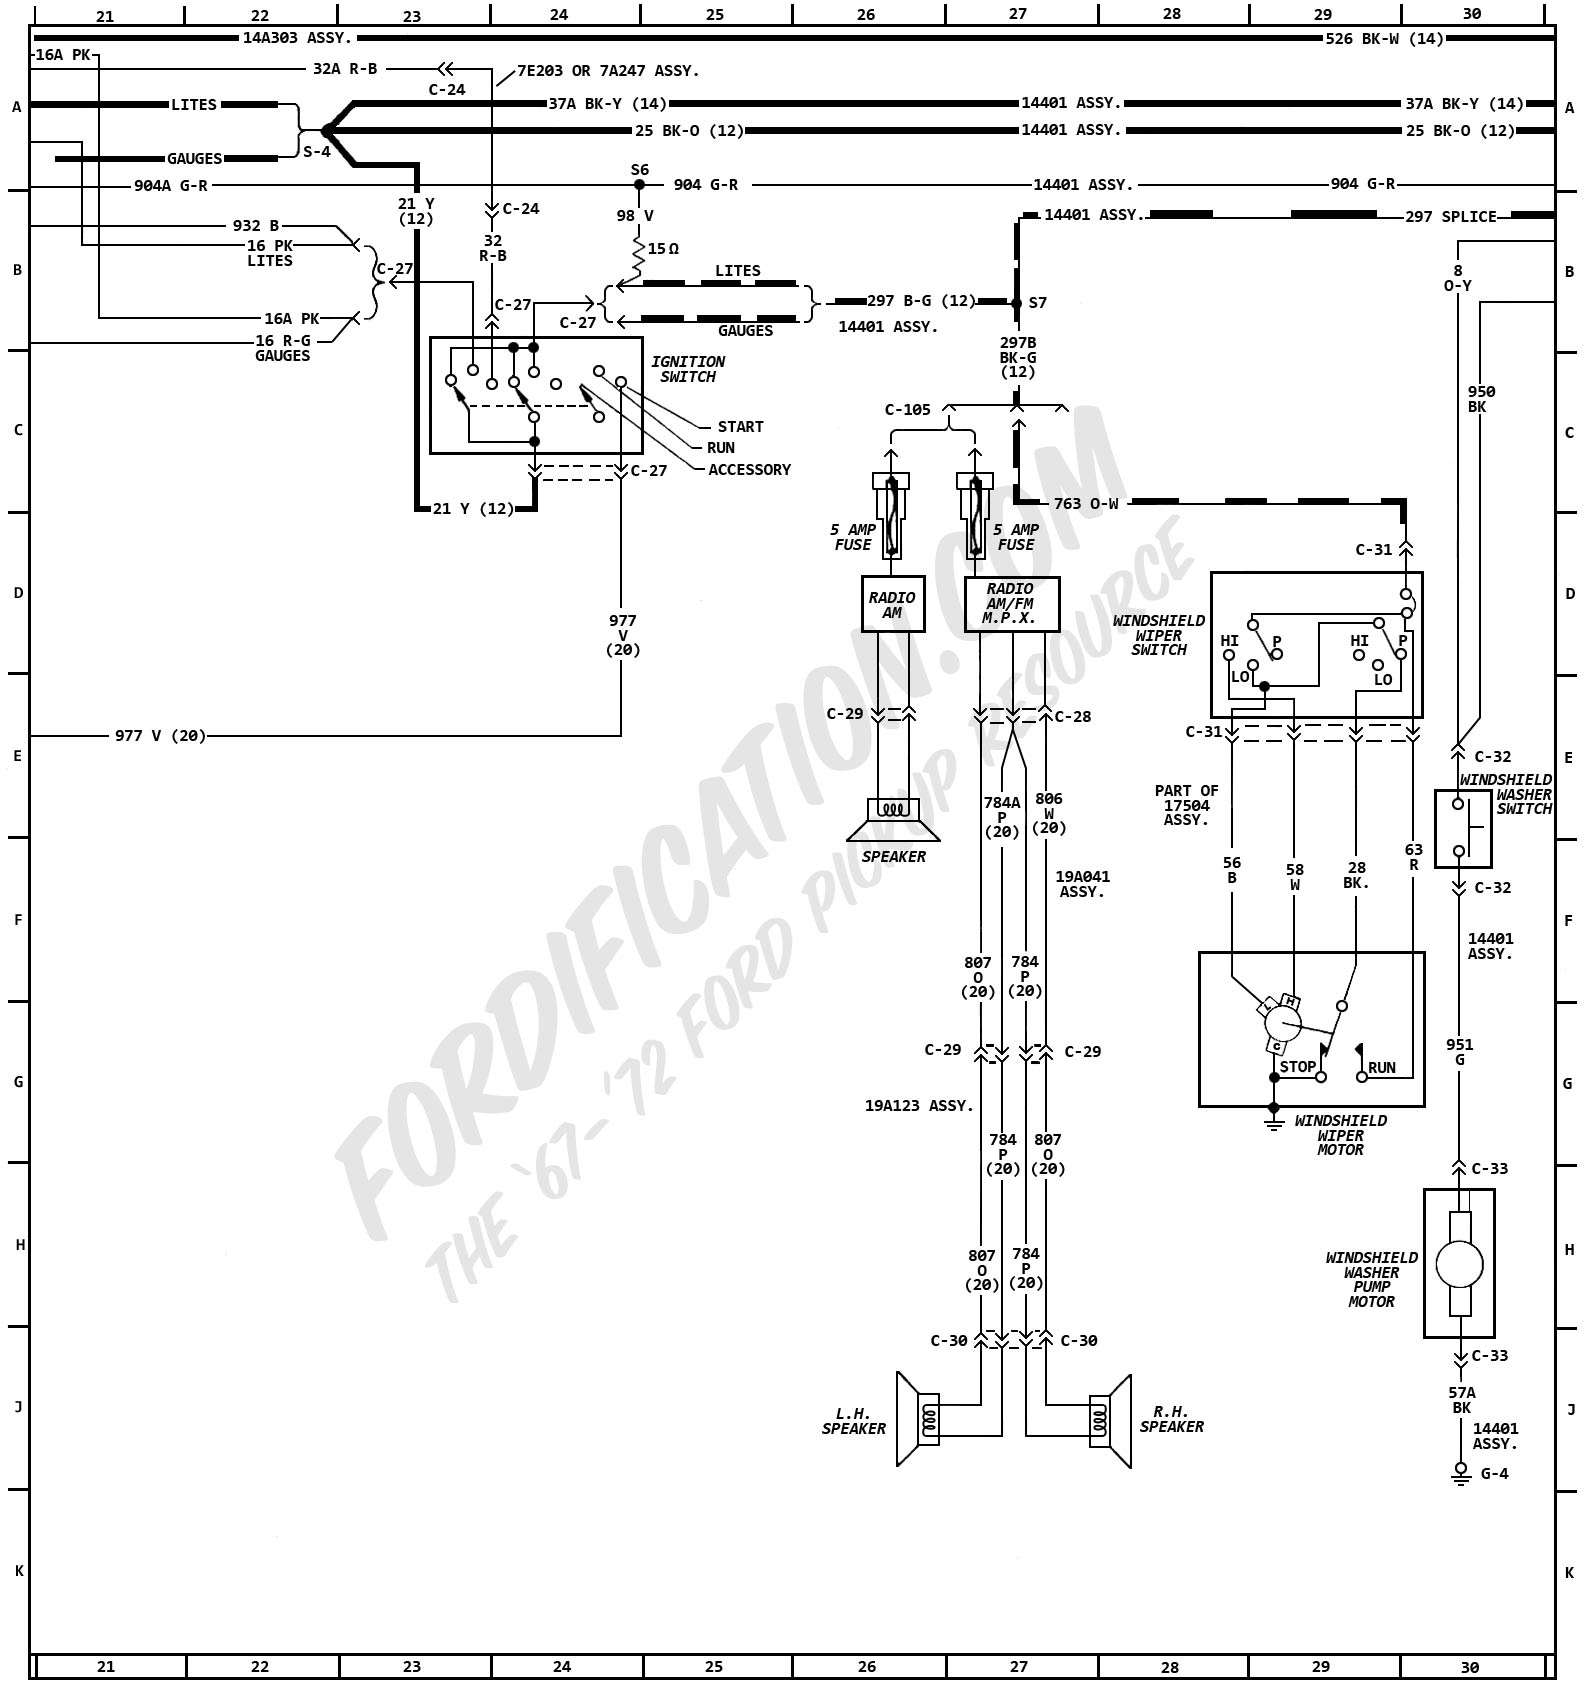 89 94 Ford Thunderbird Wiring Diagrams Content Resource Of 1996 Transmission Diagram Schematic 72 Rh Theodocle Fion Com 1988 Radio